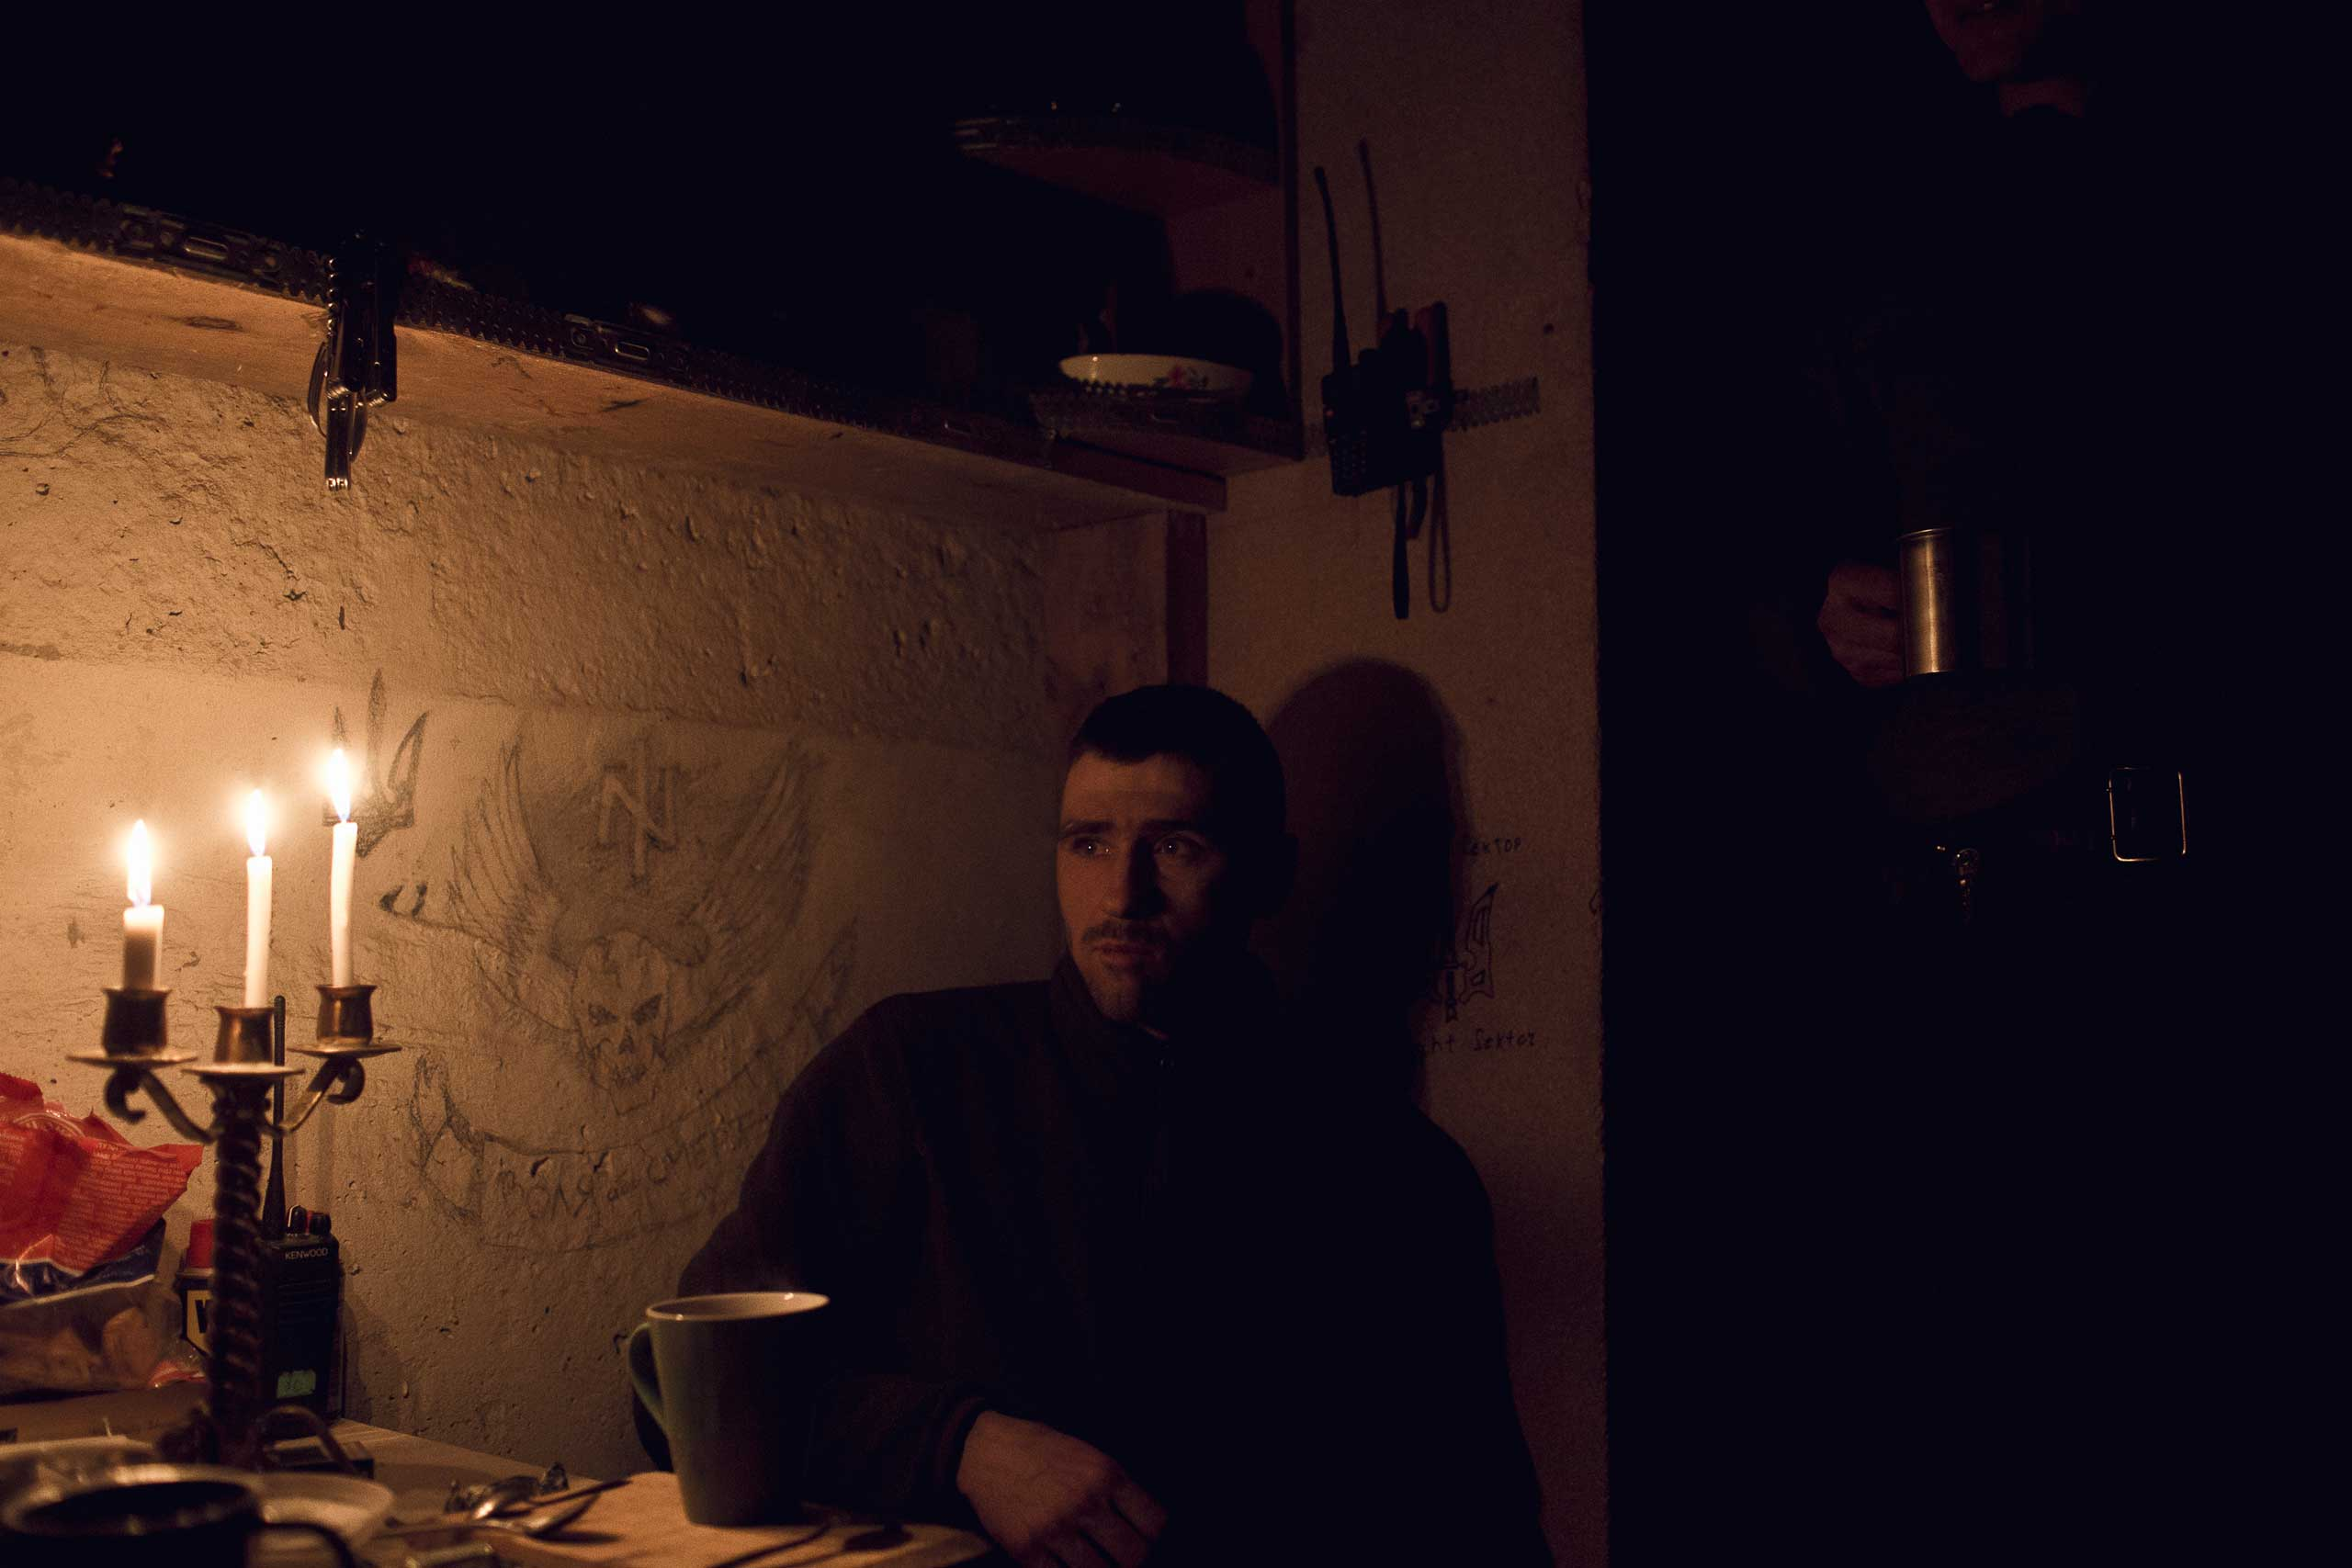 A member of the right wing Transcarpathian Sich Battalion rests in a safe room in Pisky, Ukraine, Feb. 12, 2015.